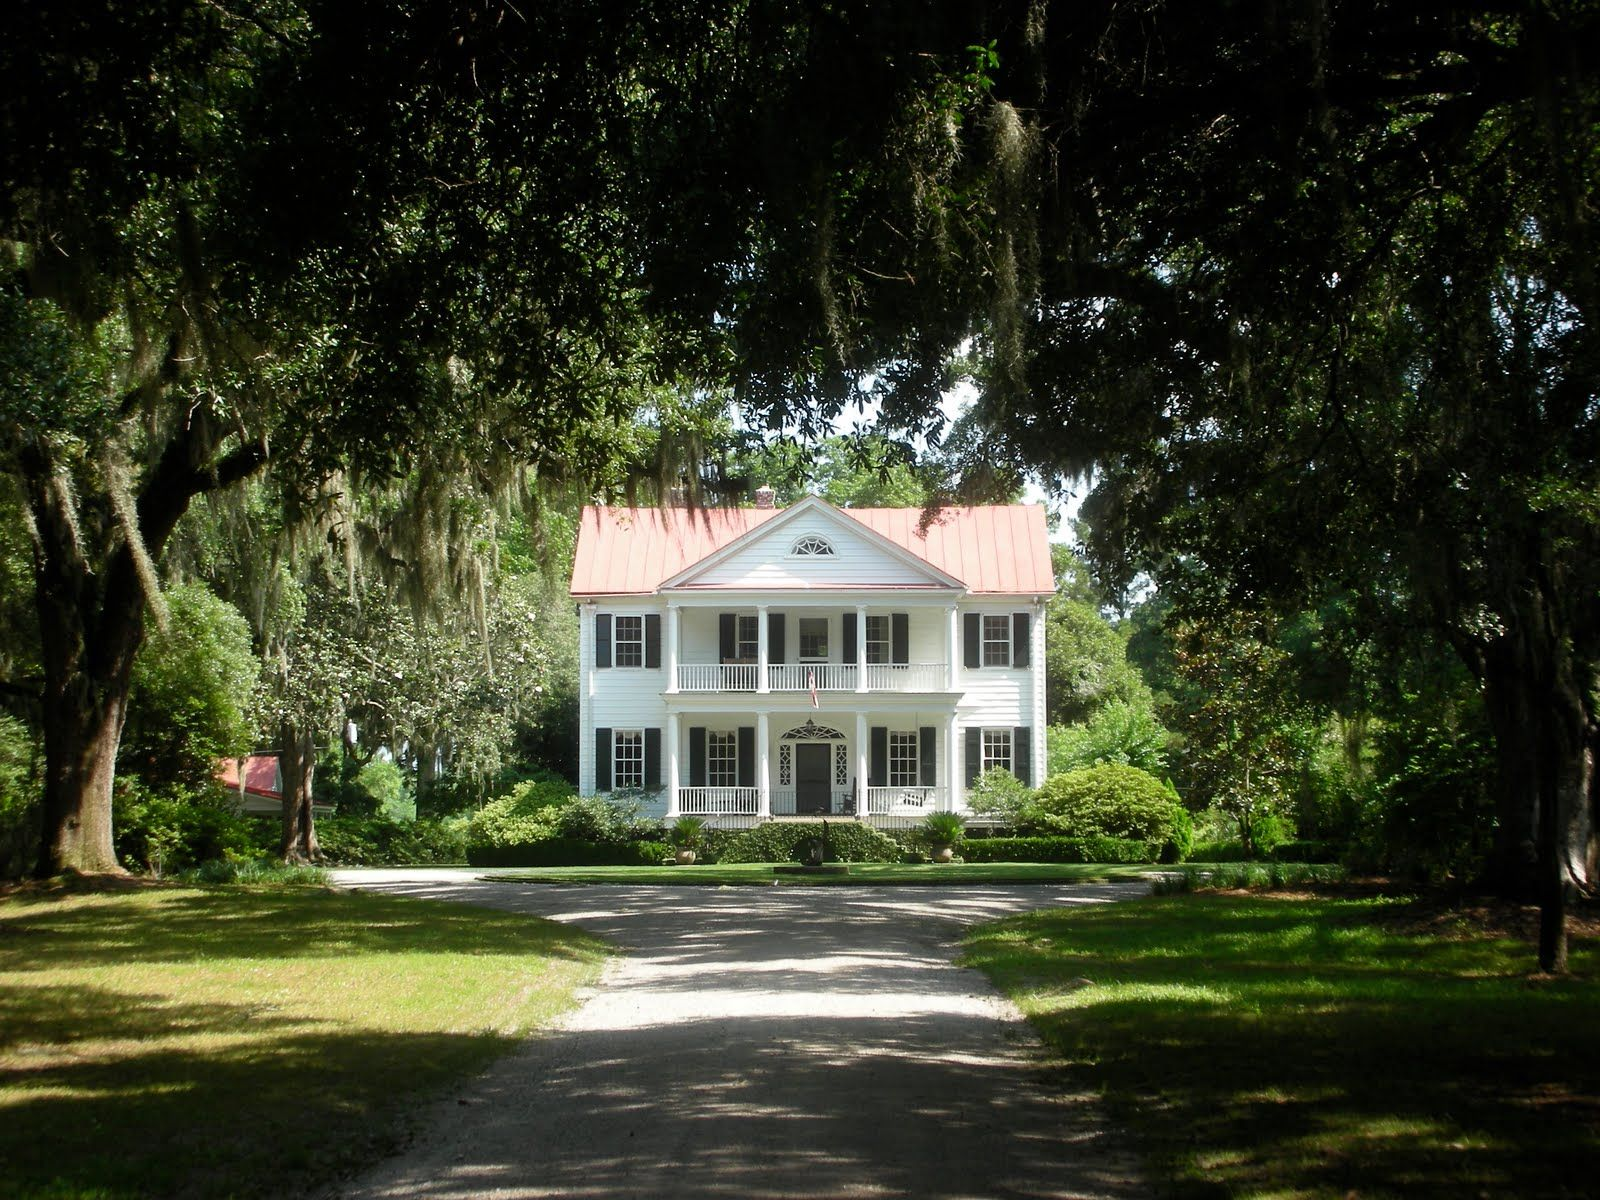 Pictures Of Homes In South Carolina We Arrived To